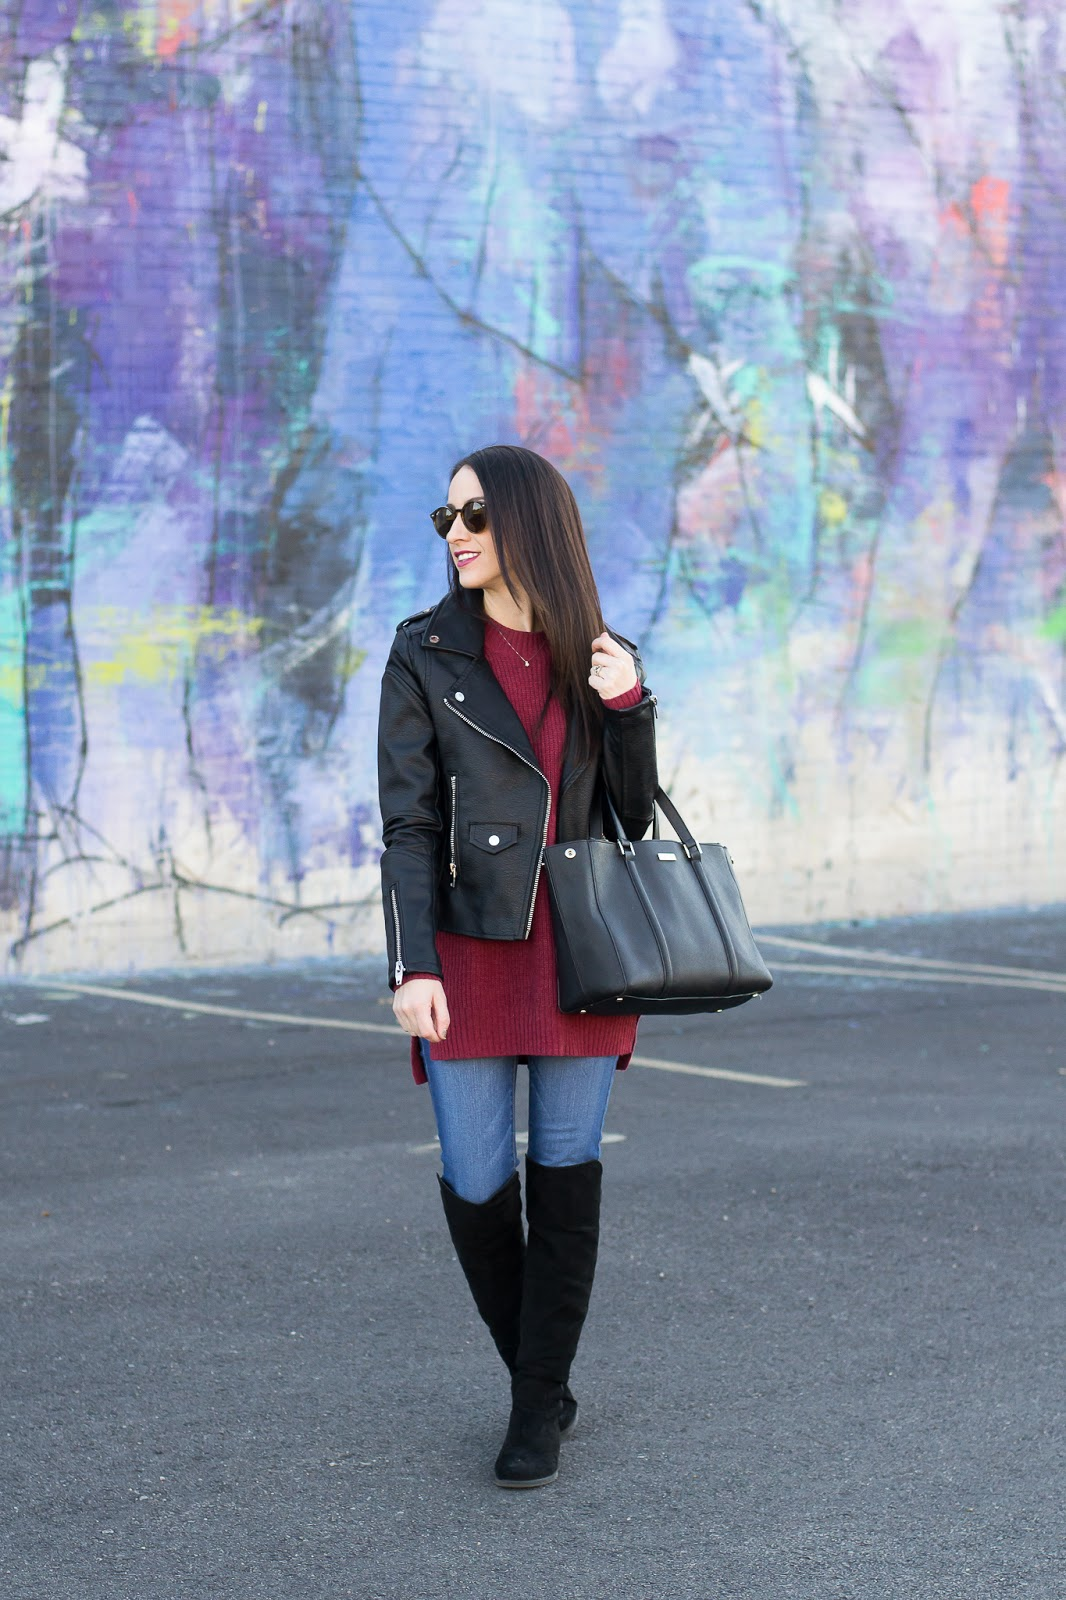 Why You Should Add a Faux Leather Jacket to Your Wardrobe